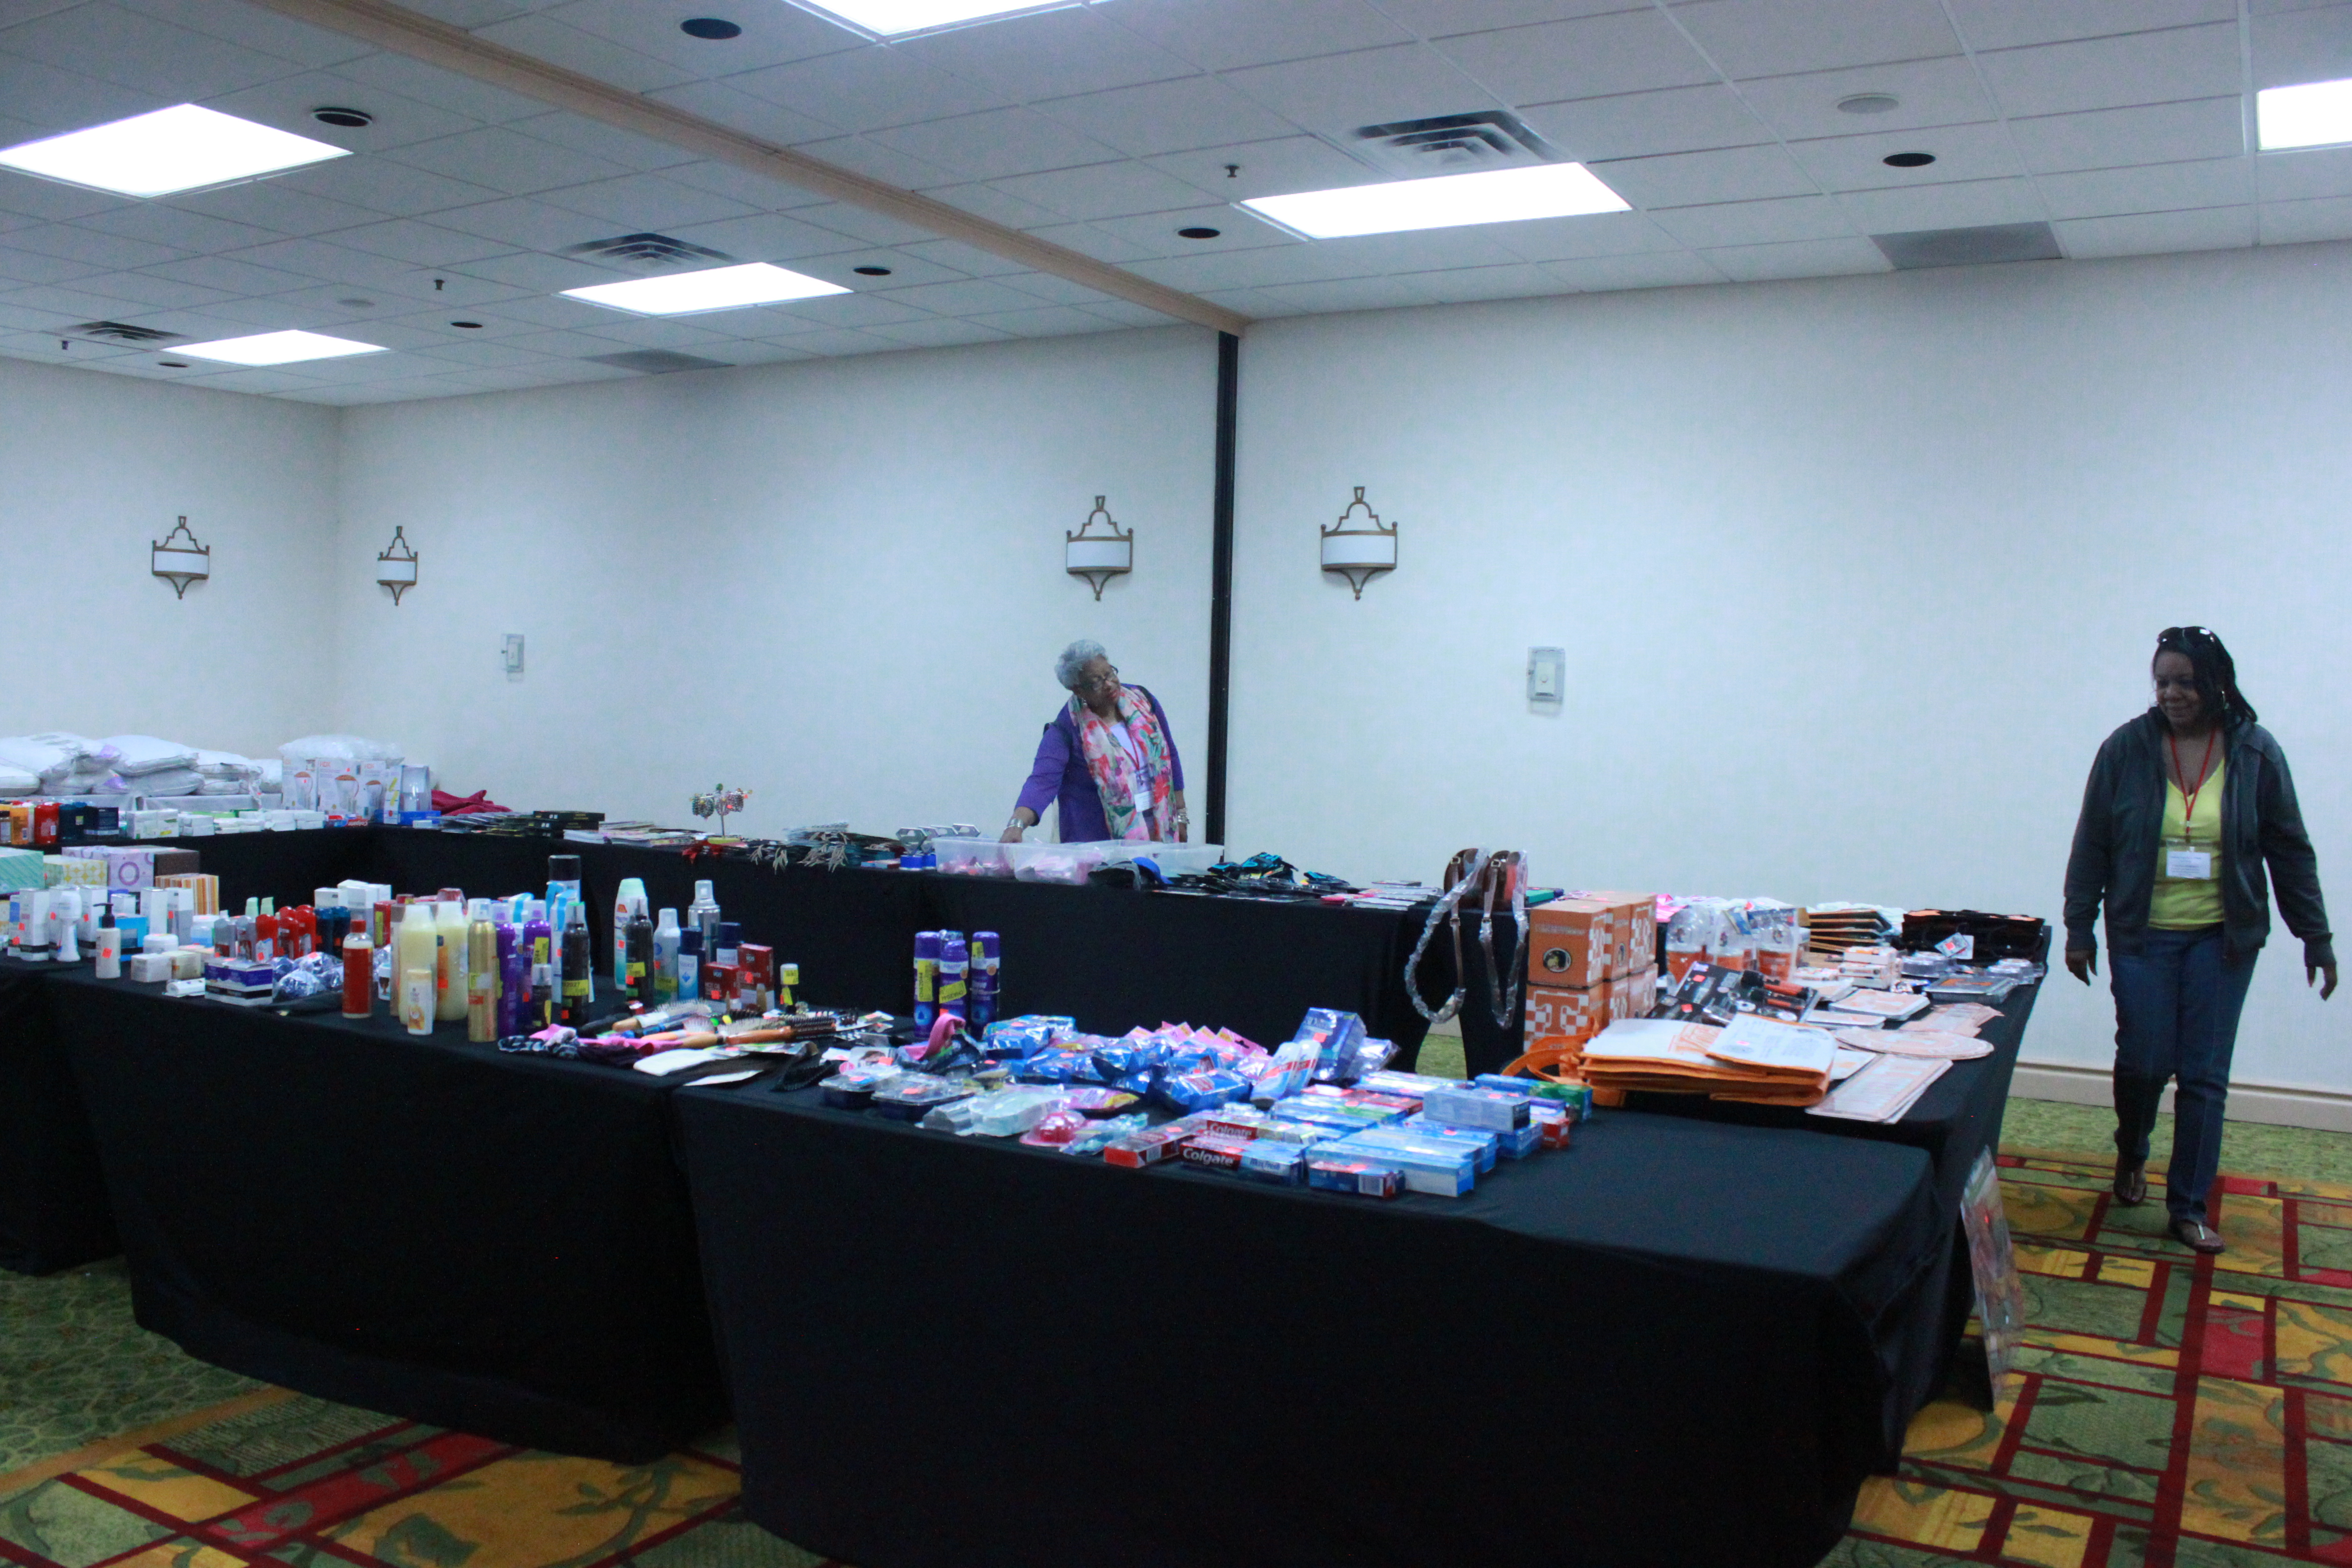 TCAC Depot at the conference